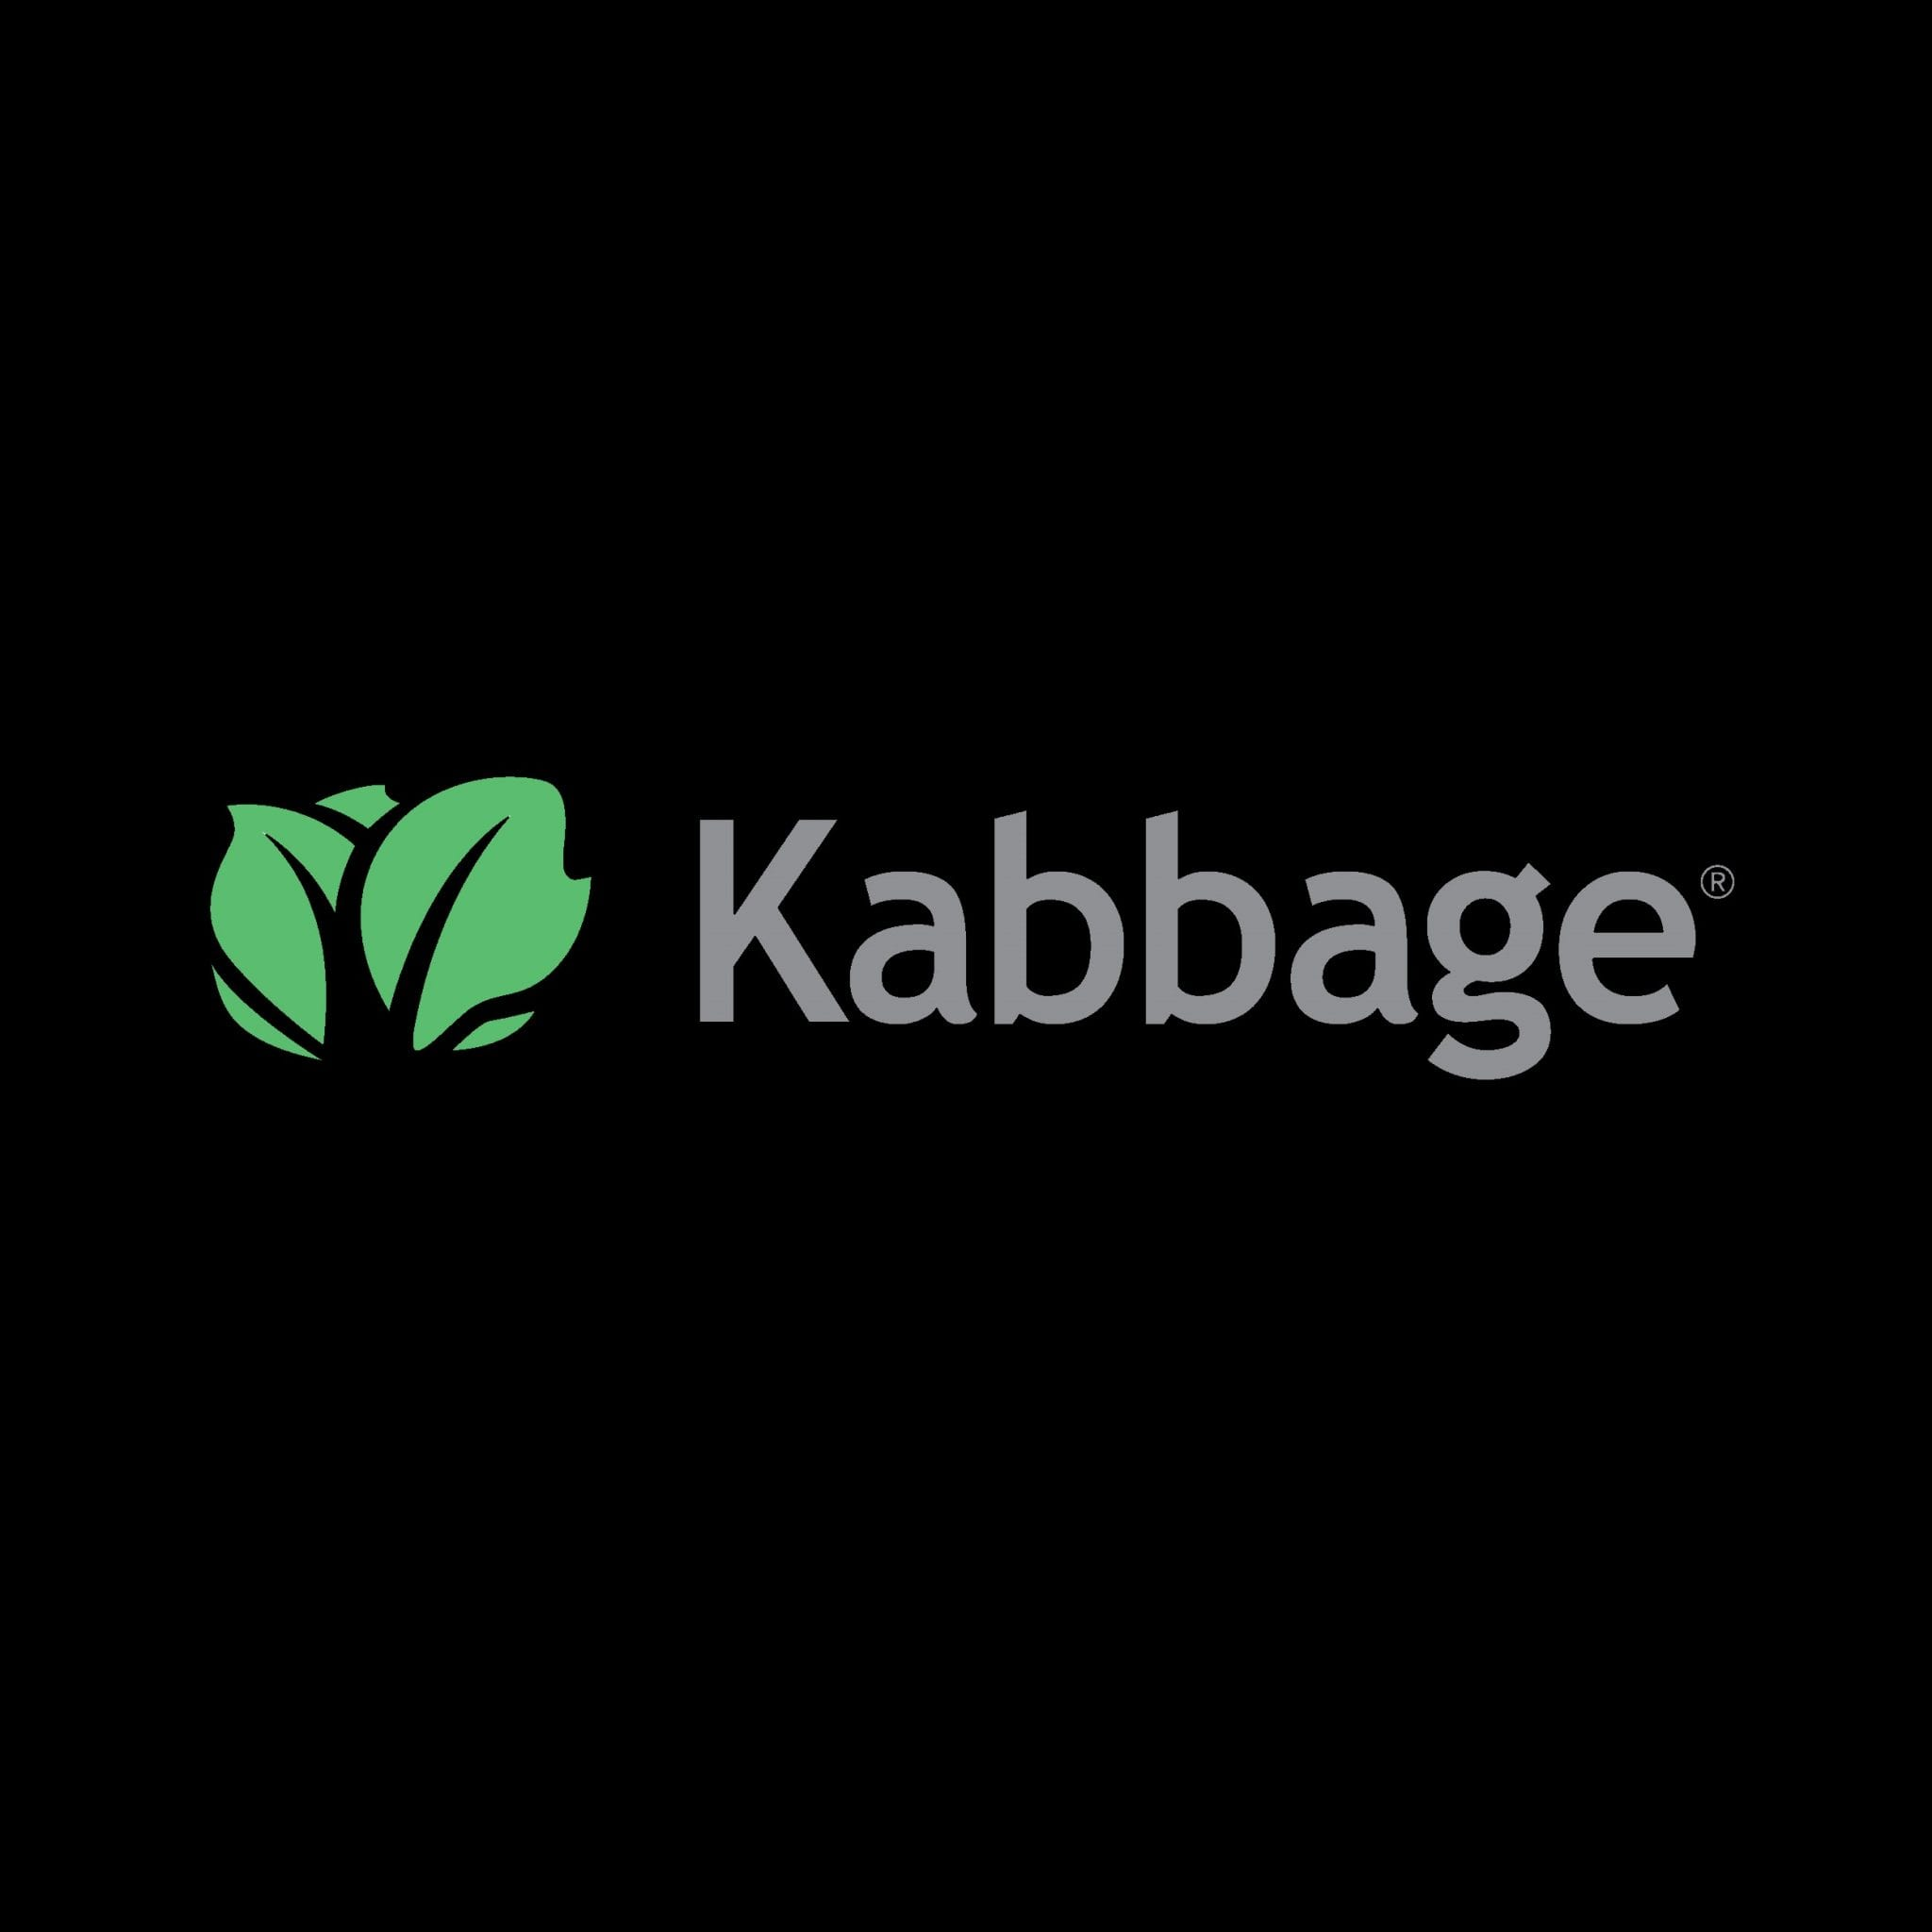 Small business funding options that fit your business- Visit us at Kabbage.com